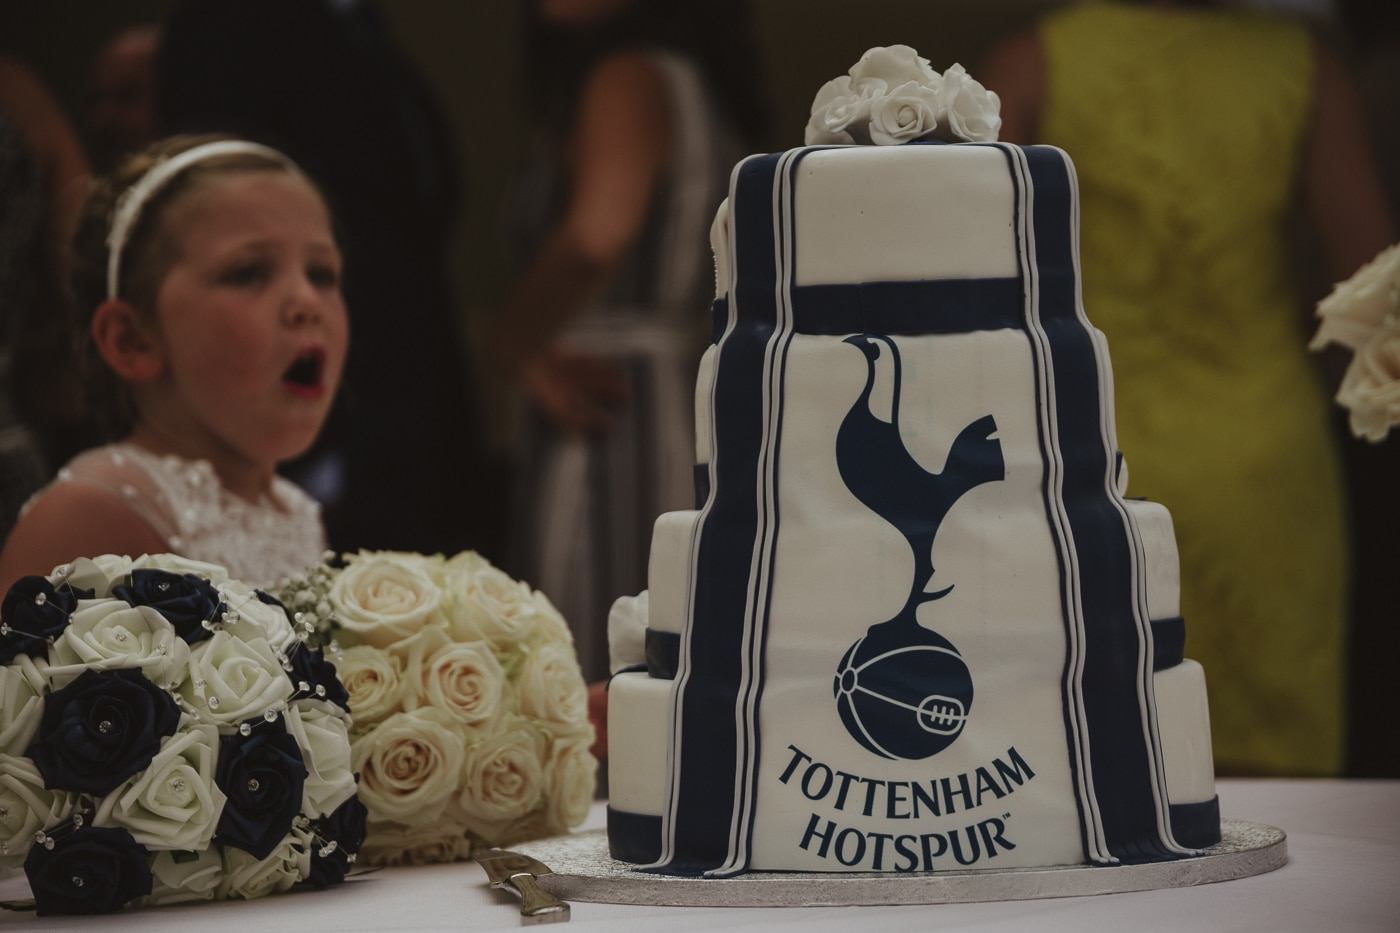 Tottenham hotspur wedding cake with flowers on the top and by the side and a surprised looking bridesmaid in the background by Joshua Wyborn